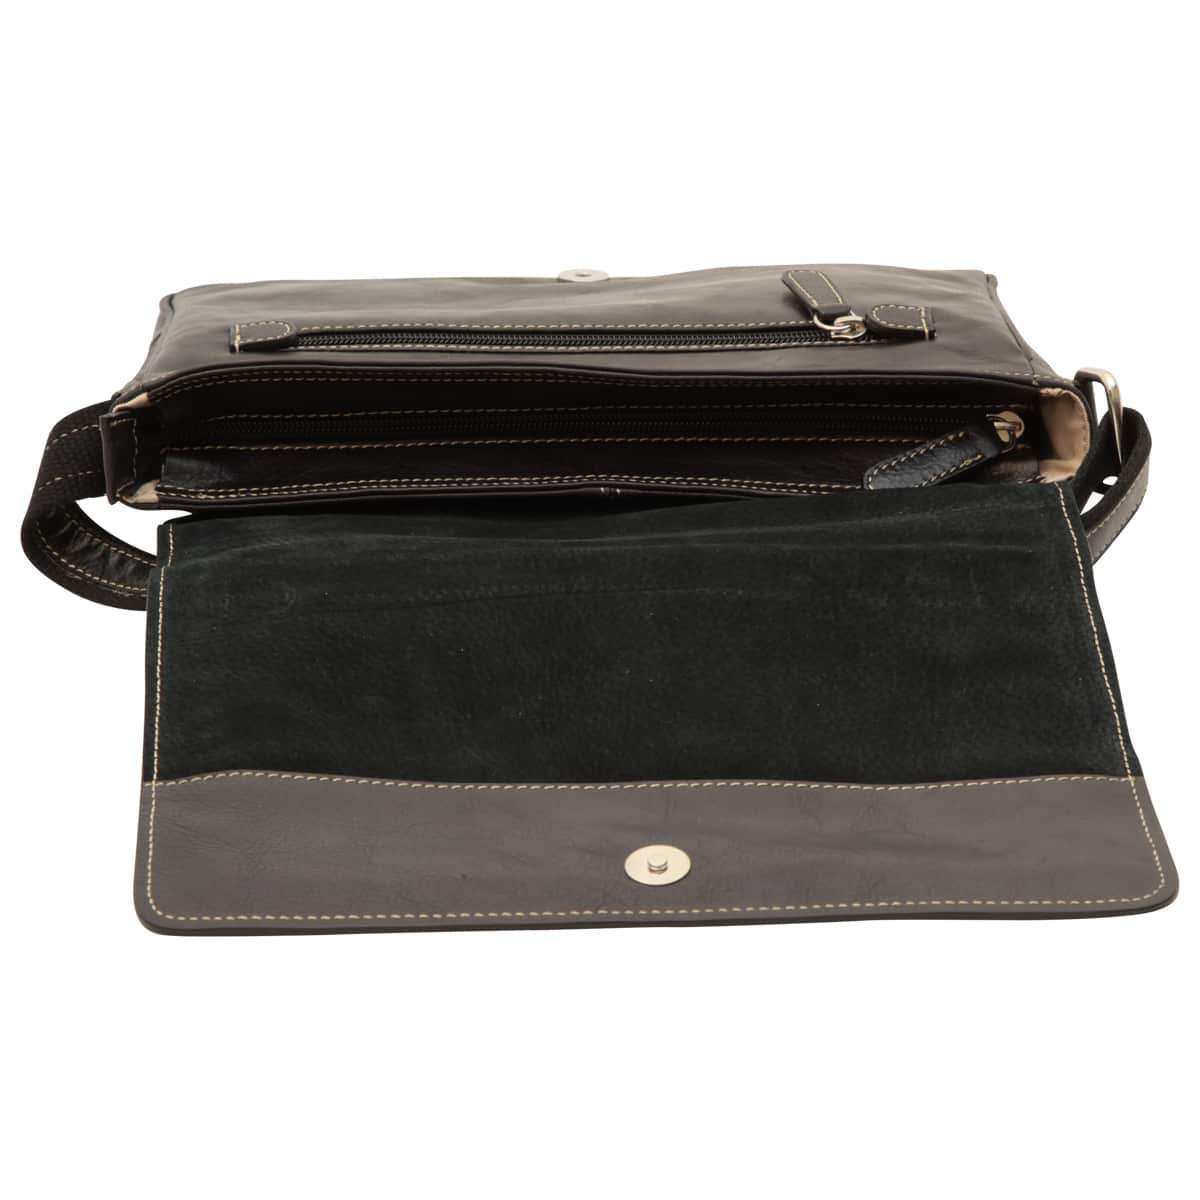 Oiled calfskin leather messenger with frontal zip closure - Black | 410461NE UK | Old Angler Firenze